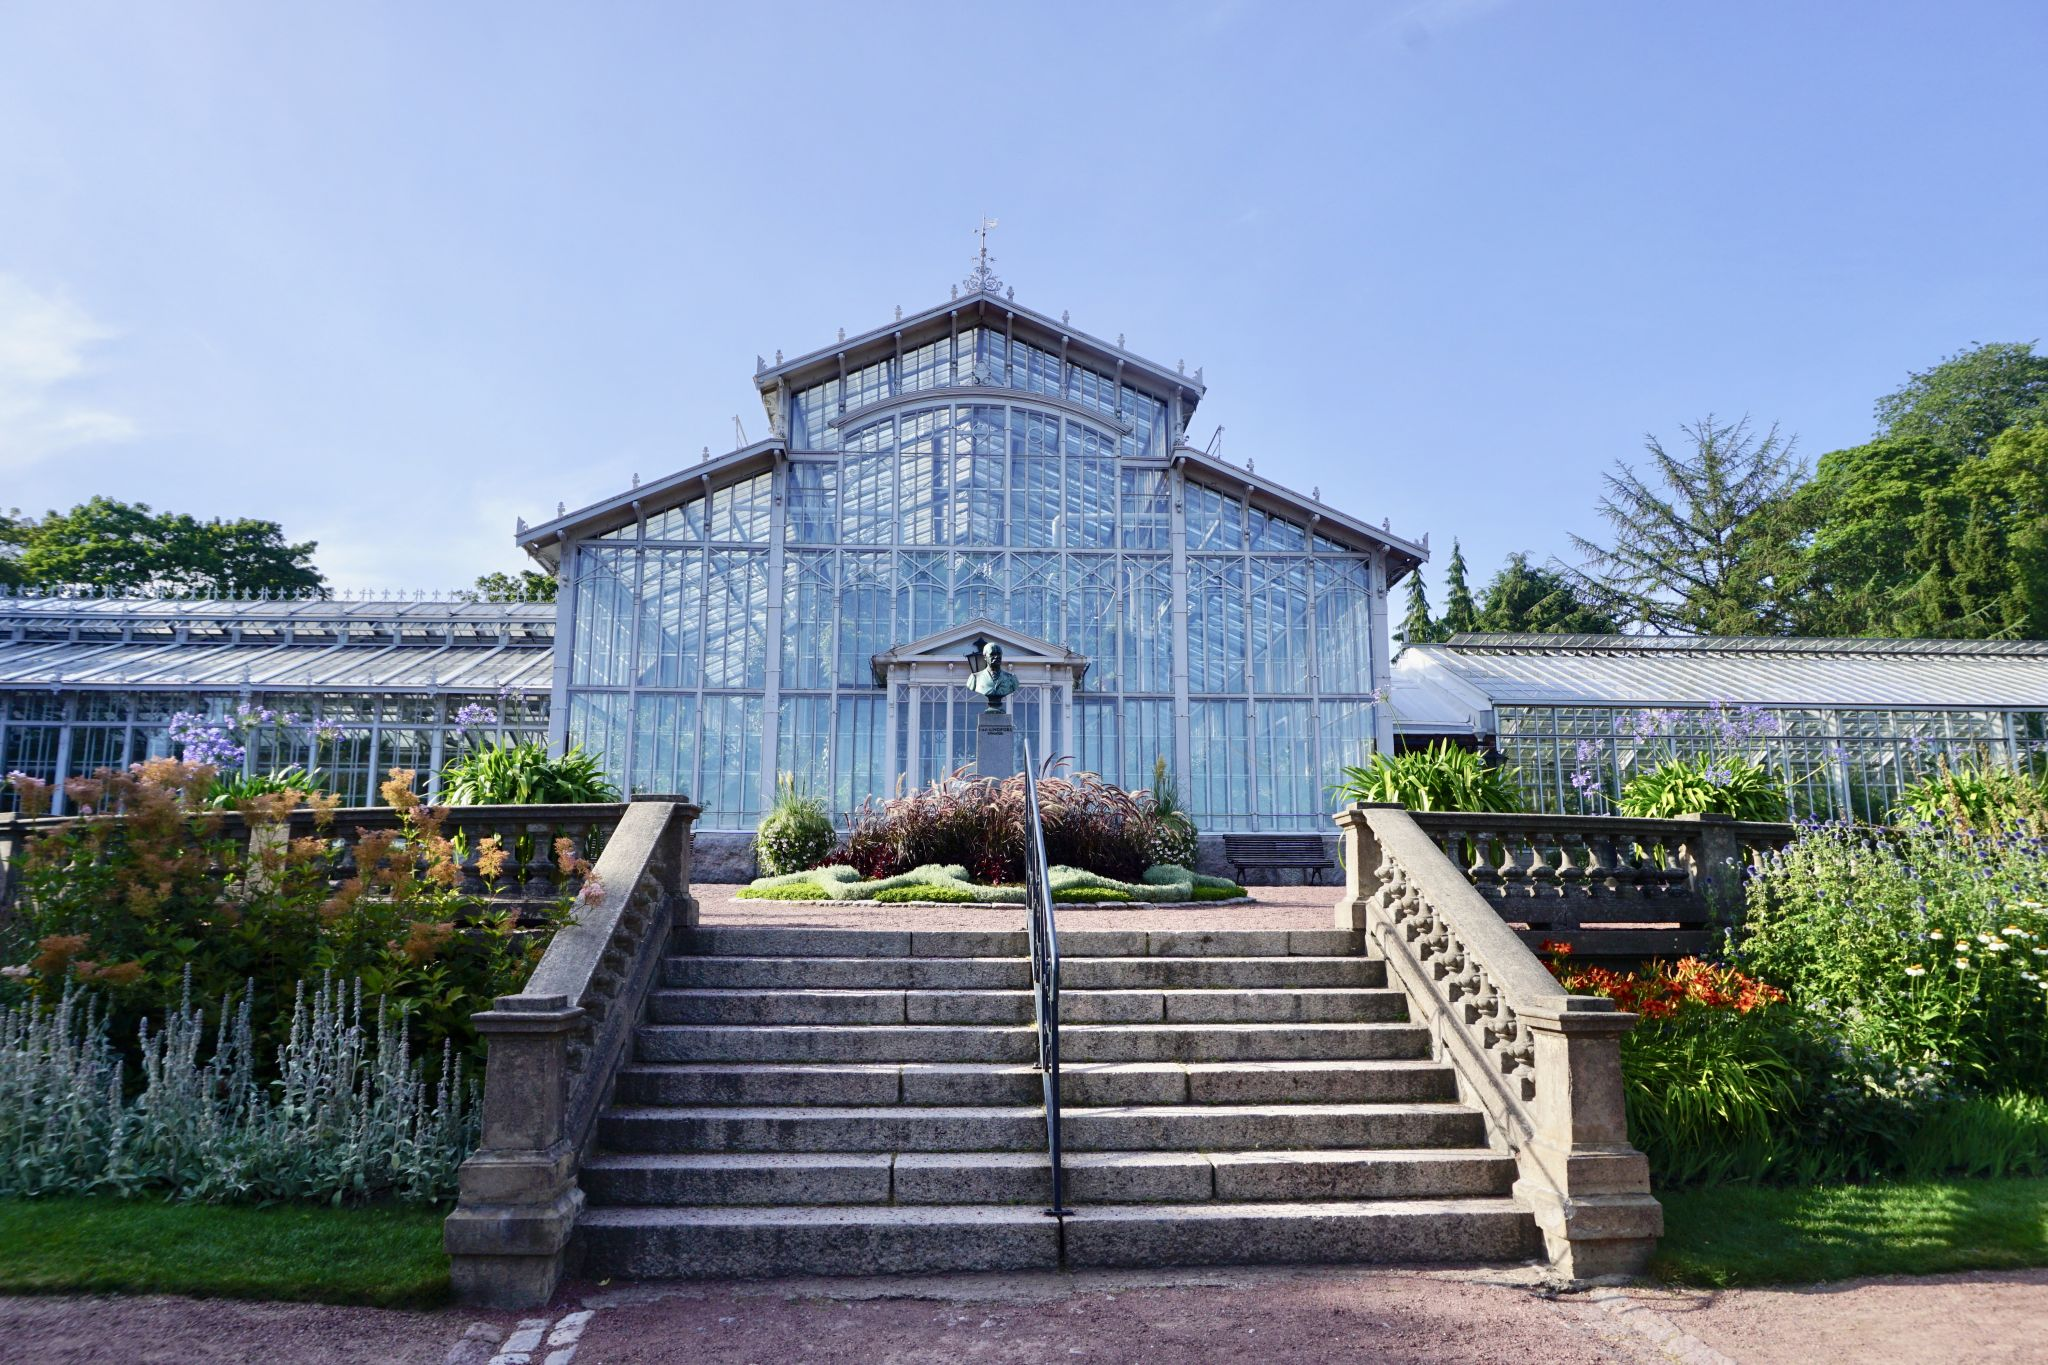 How to visit the Rose Garden by the Winter Garden in Helsinki